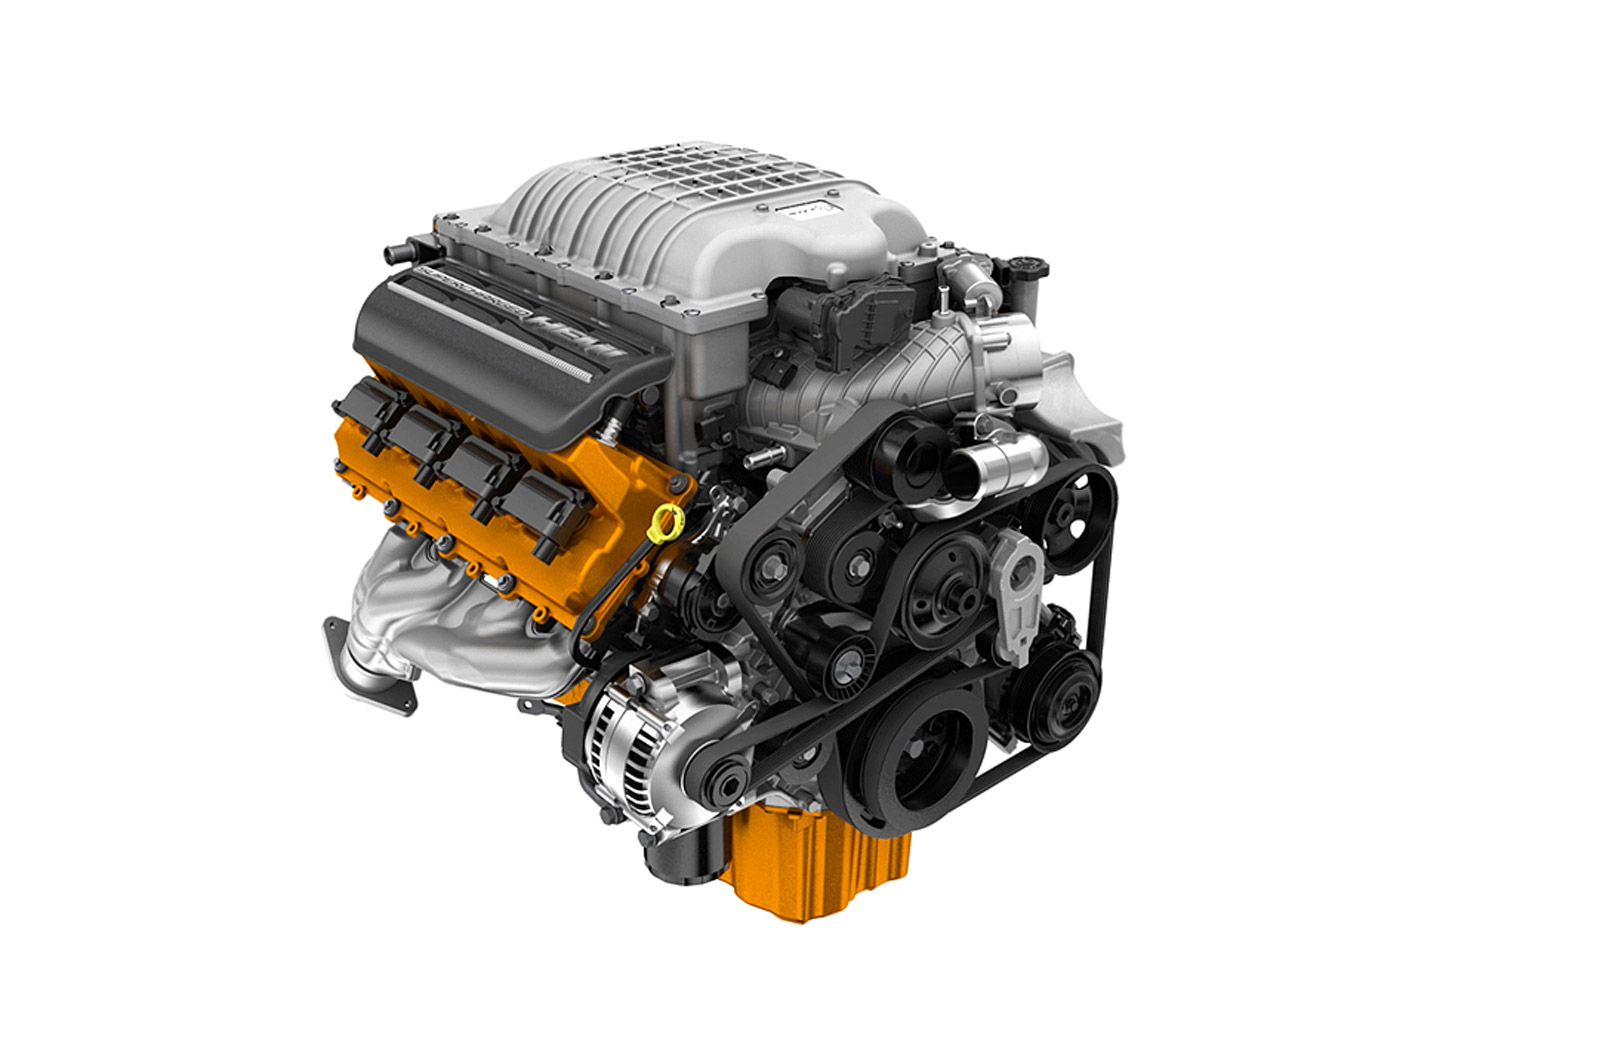 Dodge Hellcat Engine Production Pace To Increase Motrolix 62 Lincoln Diagram